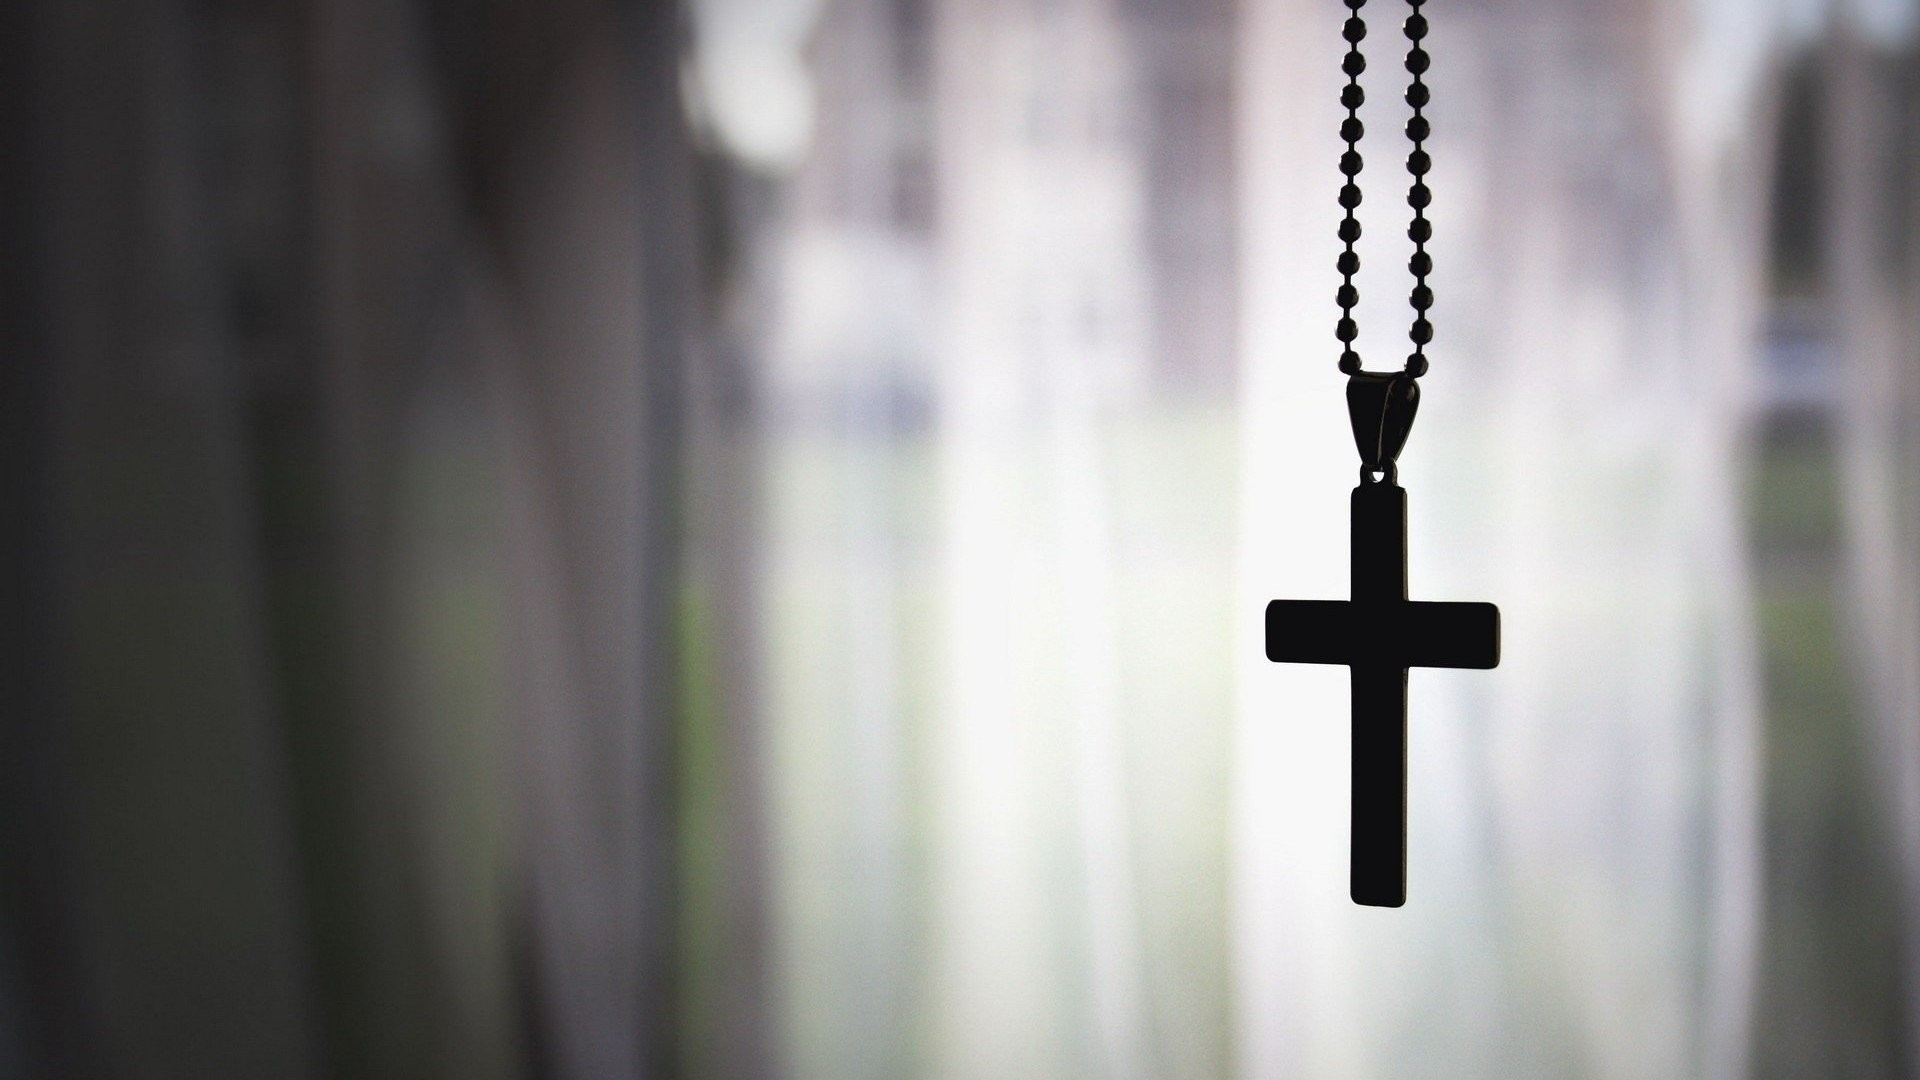 Res: 1920x1080, HD Wallpaper | Background Image ID:106195.  Religious Cross